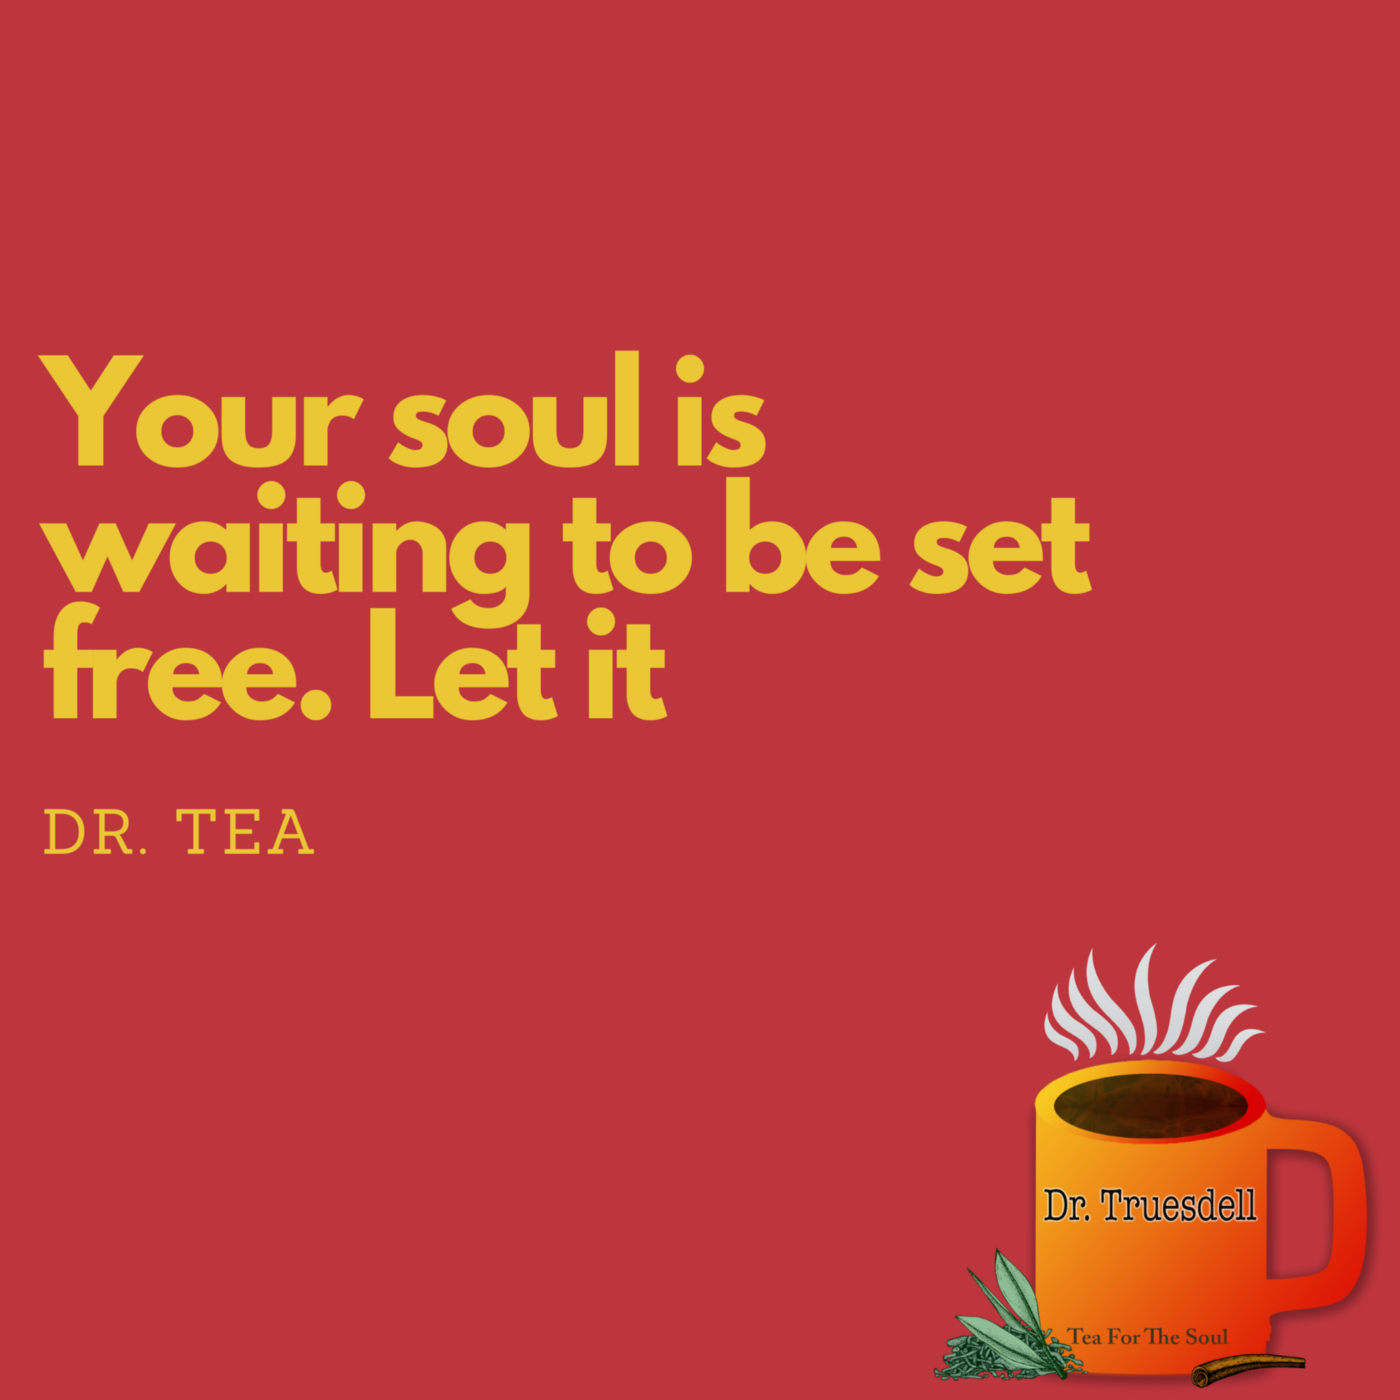 """Image of sign that says """"Your soul is waiting to be set free. Let it. Dr. Tea"""